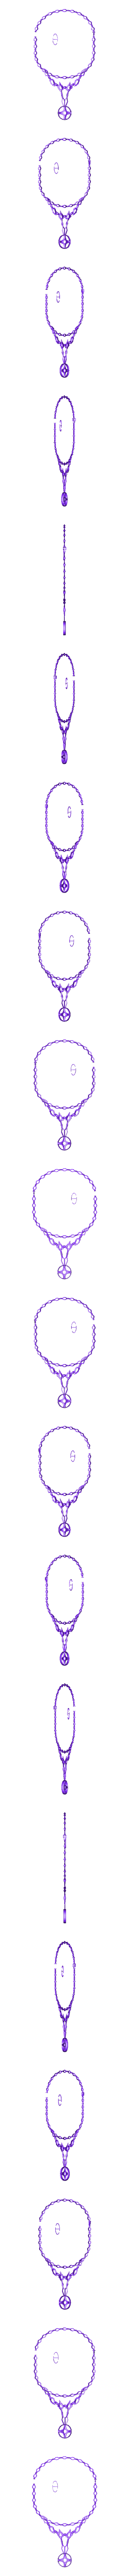 collier anneau.stl Download free STL file Star shuriken necklace and ring • 3D printing template, gialerital